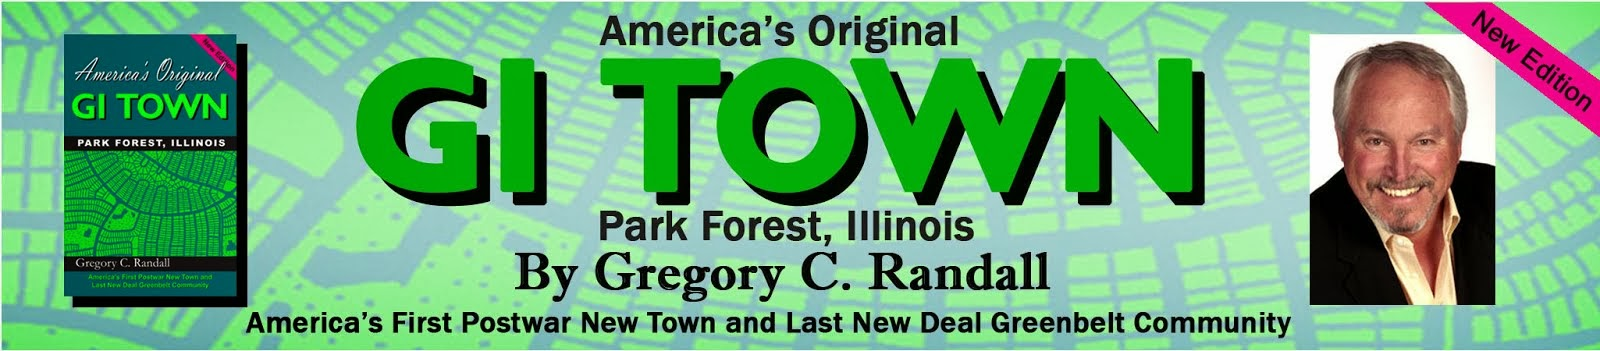 GI TOWN - Park Forest, Illinois